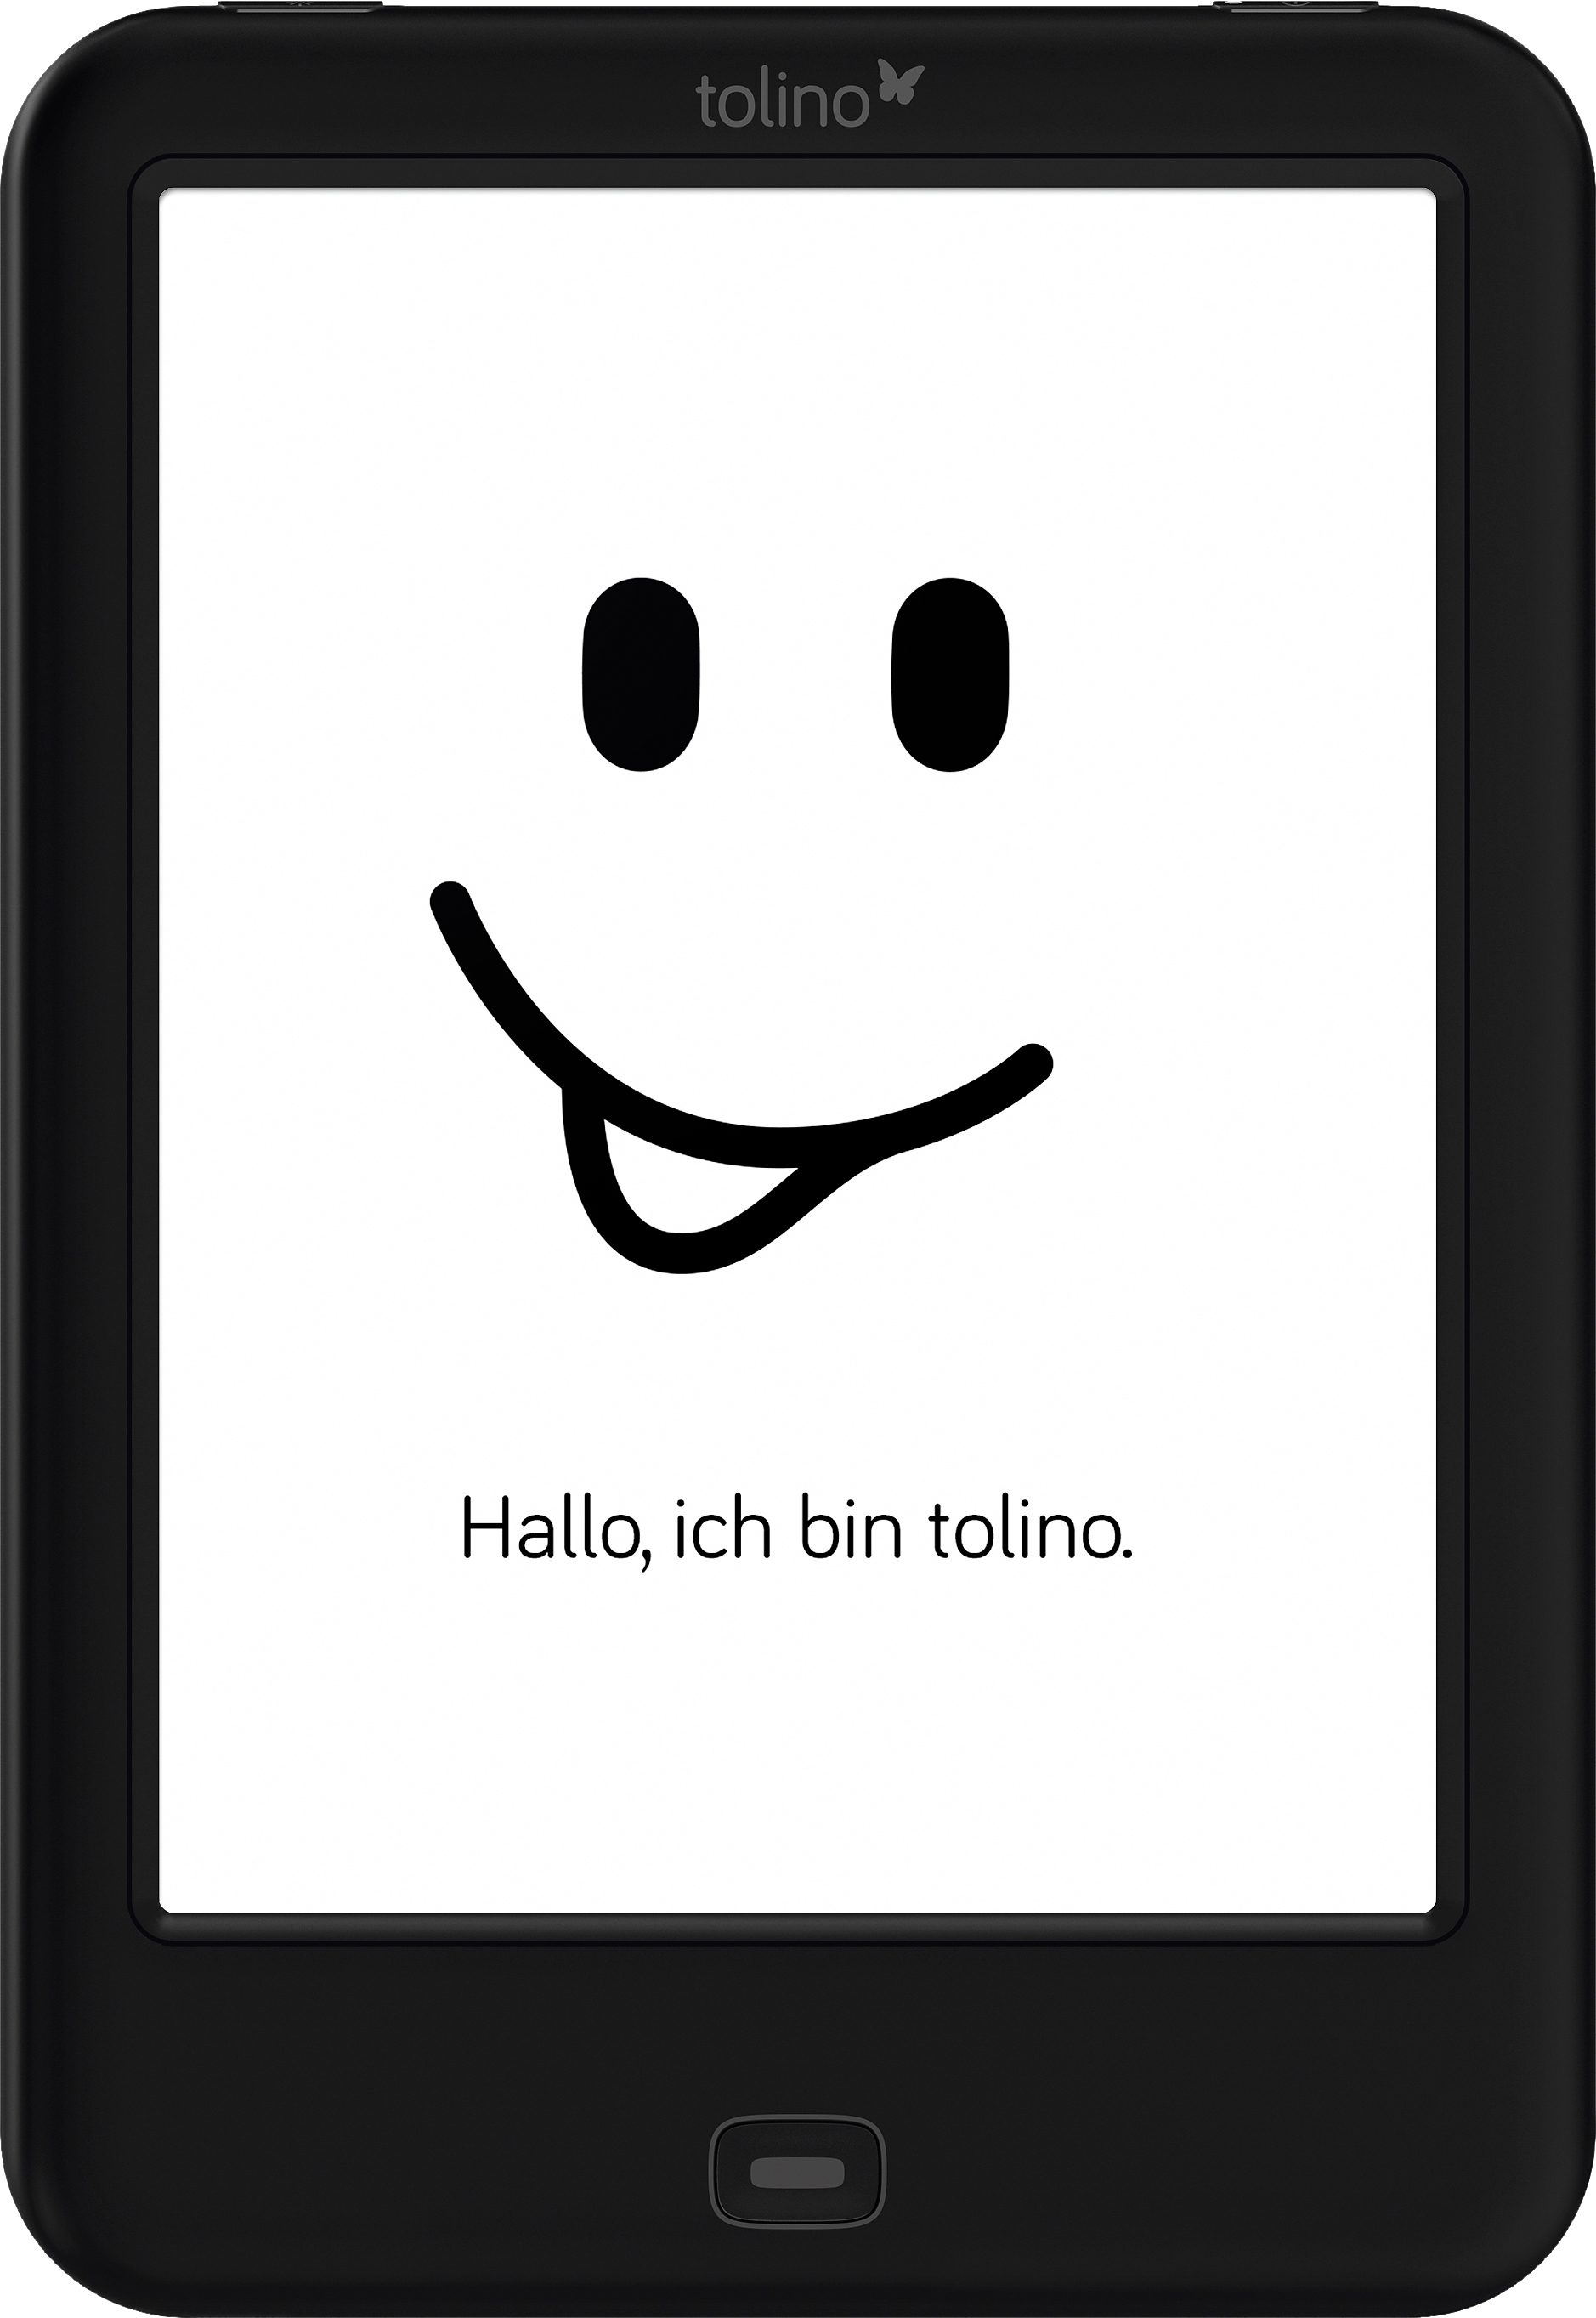 Tolino Shine 2 HD E-Book-Reader, Freescale i.MX6, 15,2 cm (6 Zoll), 512 MB